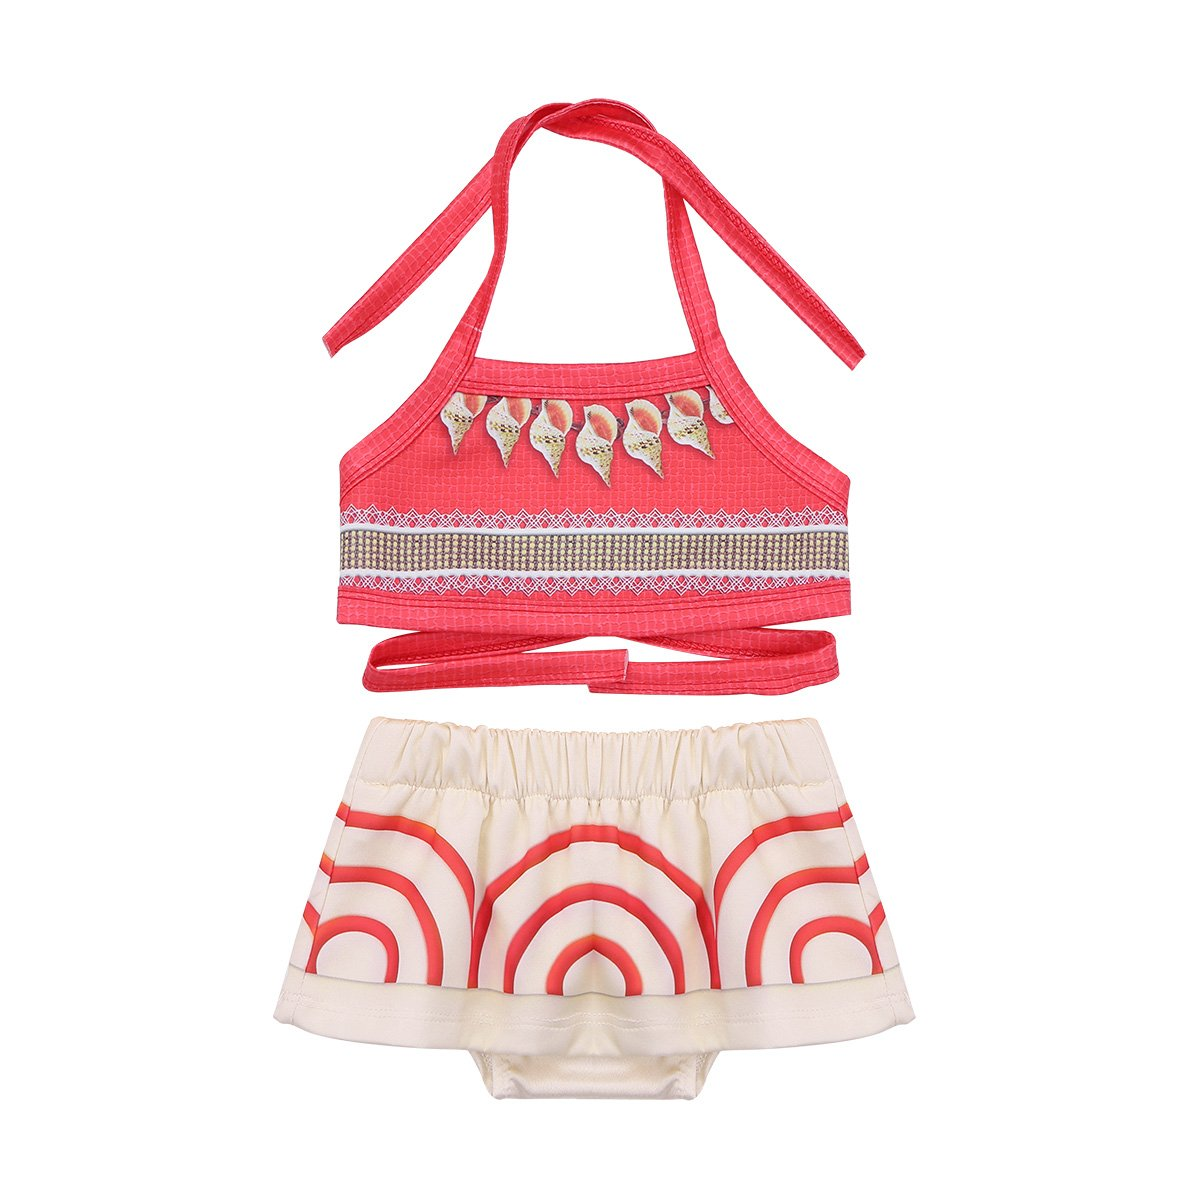 FEESHOW Baby Little Girls Moana Swimsuit Halter Tankini Bathing Suit Adventure Outfit Swimwear Fancy Costumes Red 12-18 Months